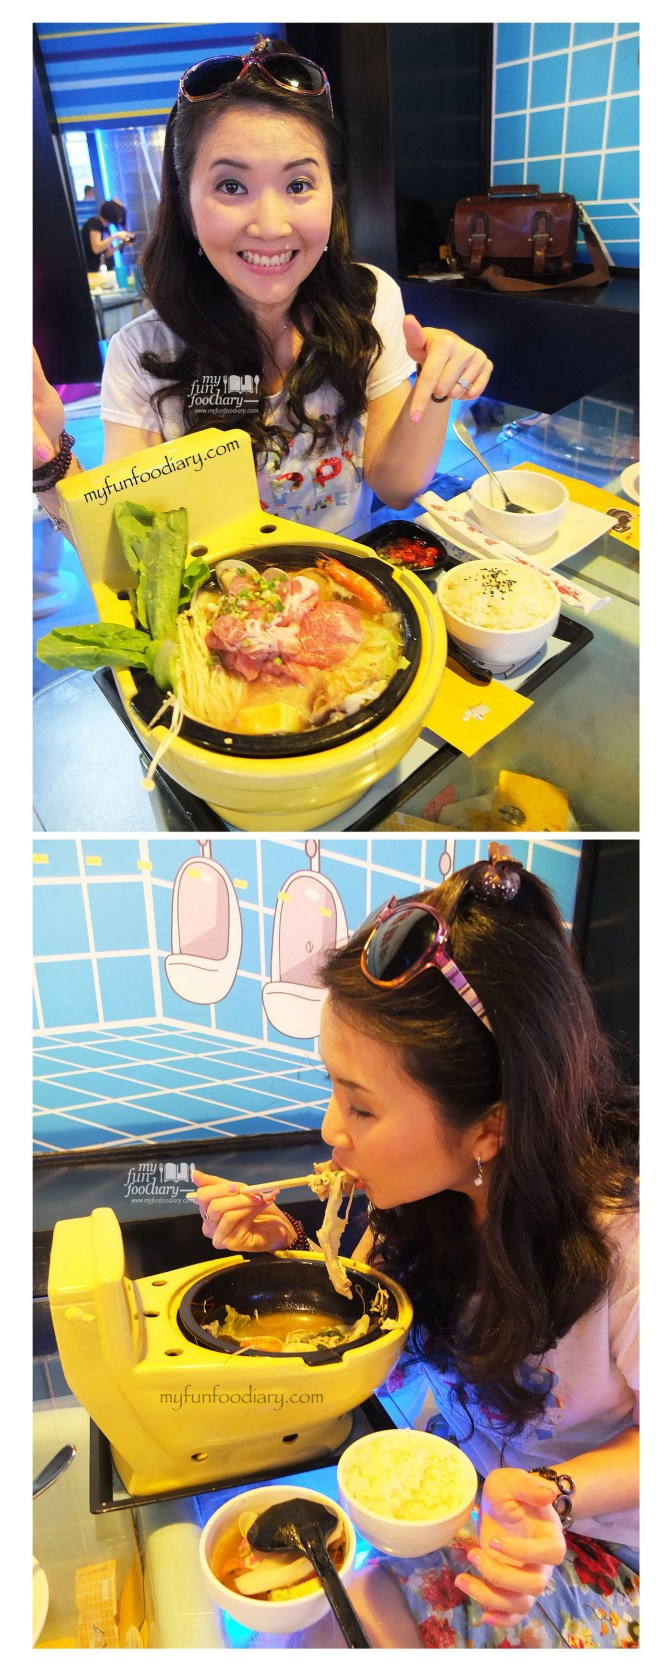 Enjoying Yummy Signature Modern Hot Pot at Modern Toilet Cafe Taiwan - by Myfunfoodiary